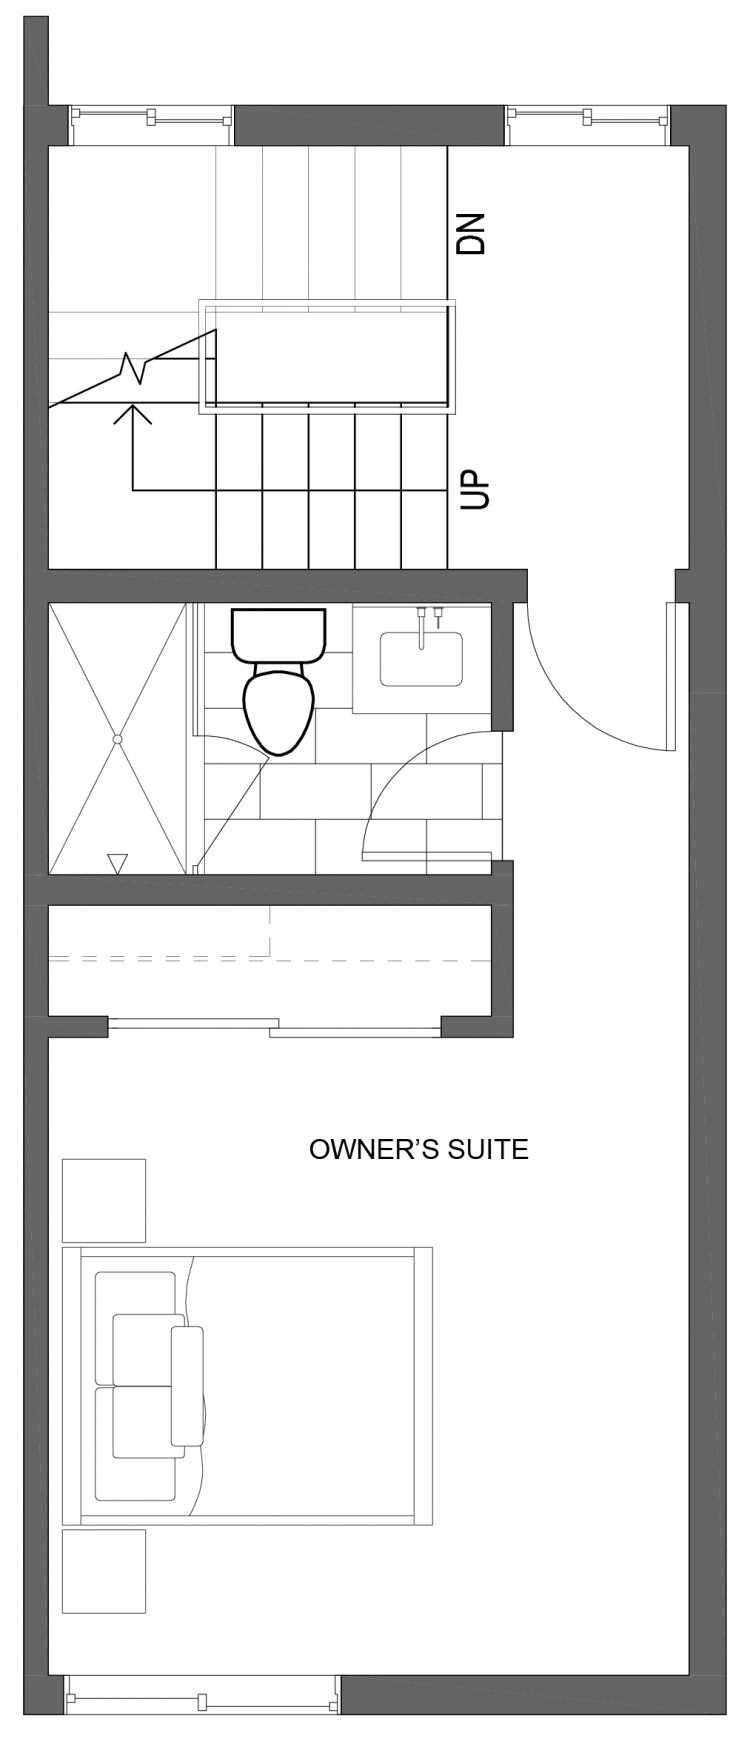 Third Floor Plan of 10427 Alderbrook Pl NW, One of the Zinnia Townhomes in the Greenwood Neighborhood of Seattle